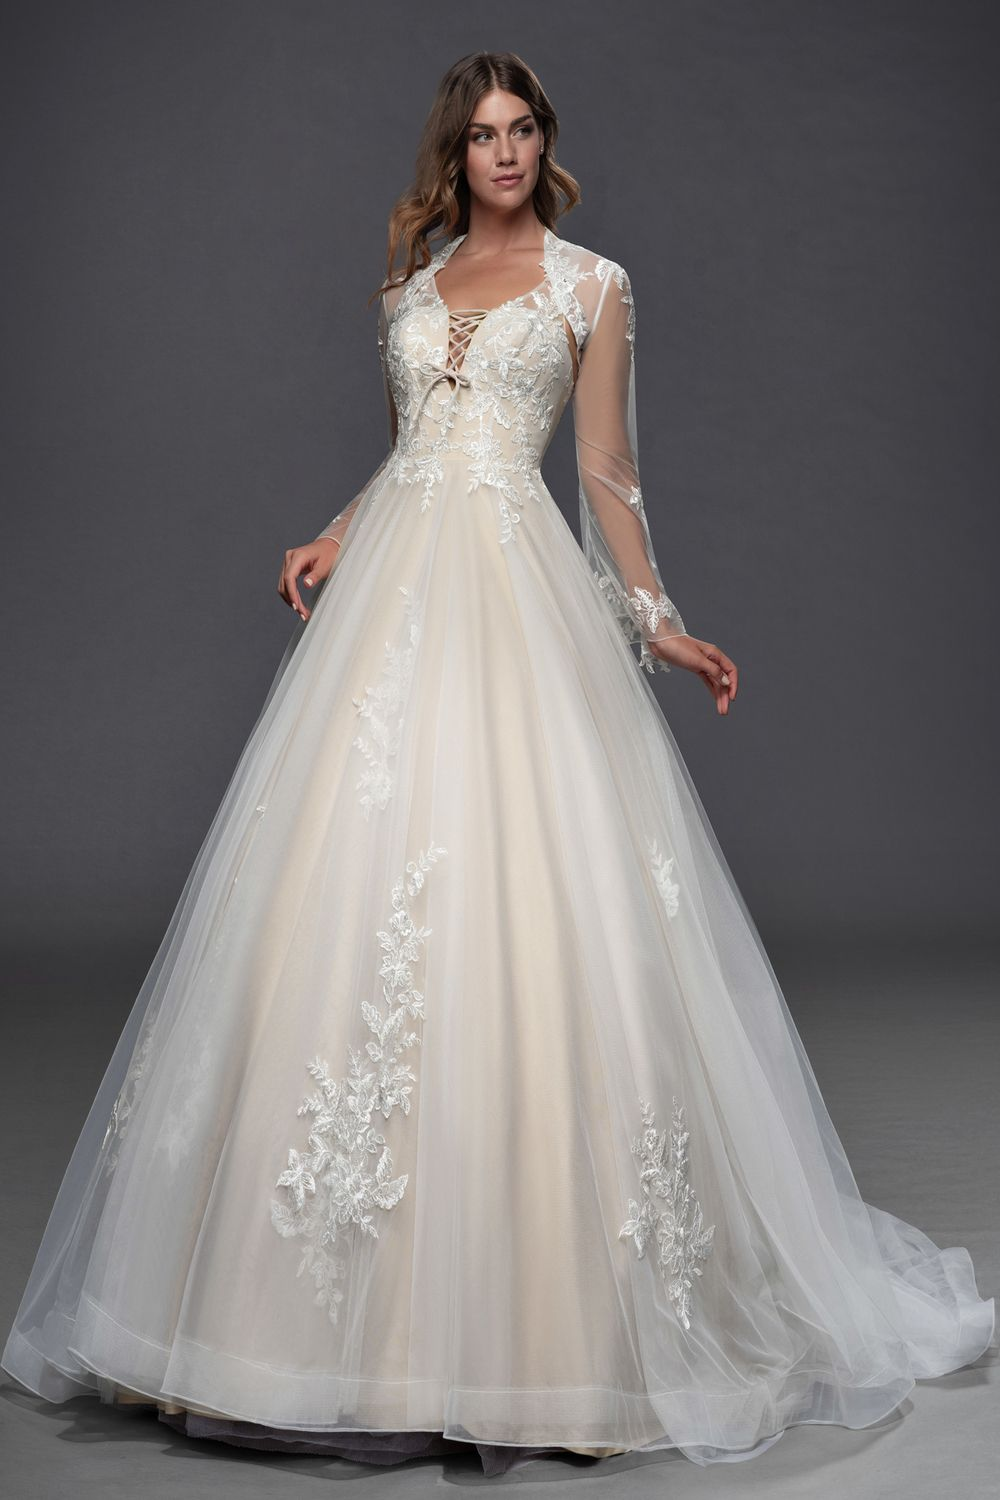 2020 New Wedding Dress Fashion Dress the wedding boutique wedding gown boutiques near me